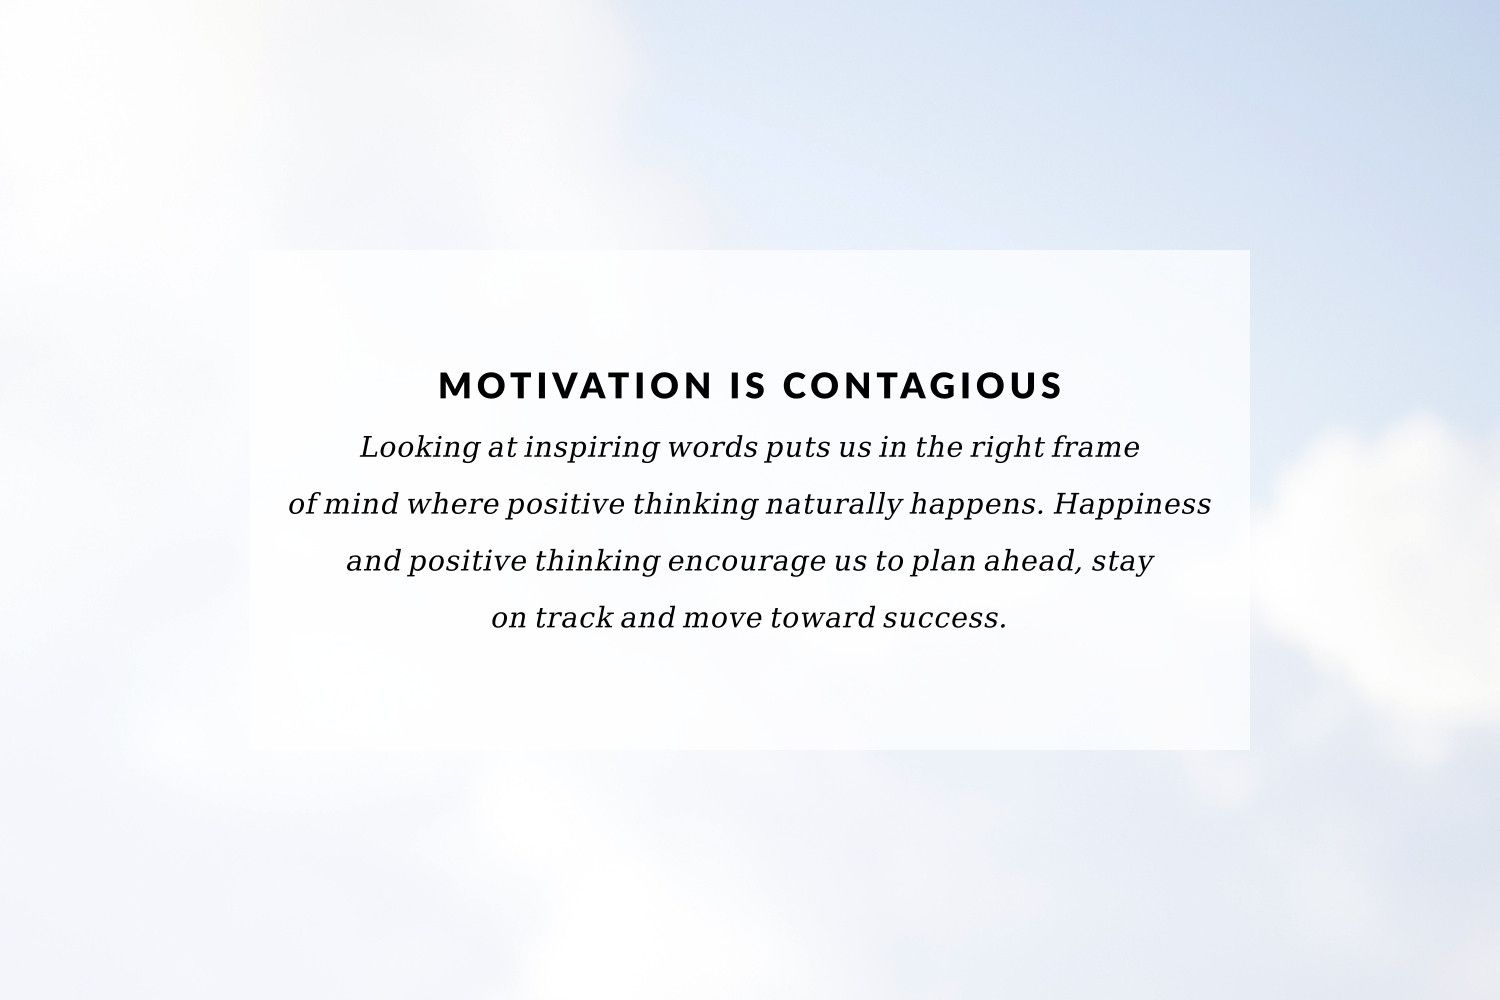 Browse our collection of inspirational fitness quotes and get instant exercise and workout motivation. Transform positive thoughts into positive actions and get fit, healthy and happy!